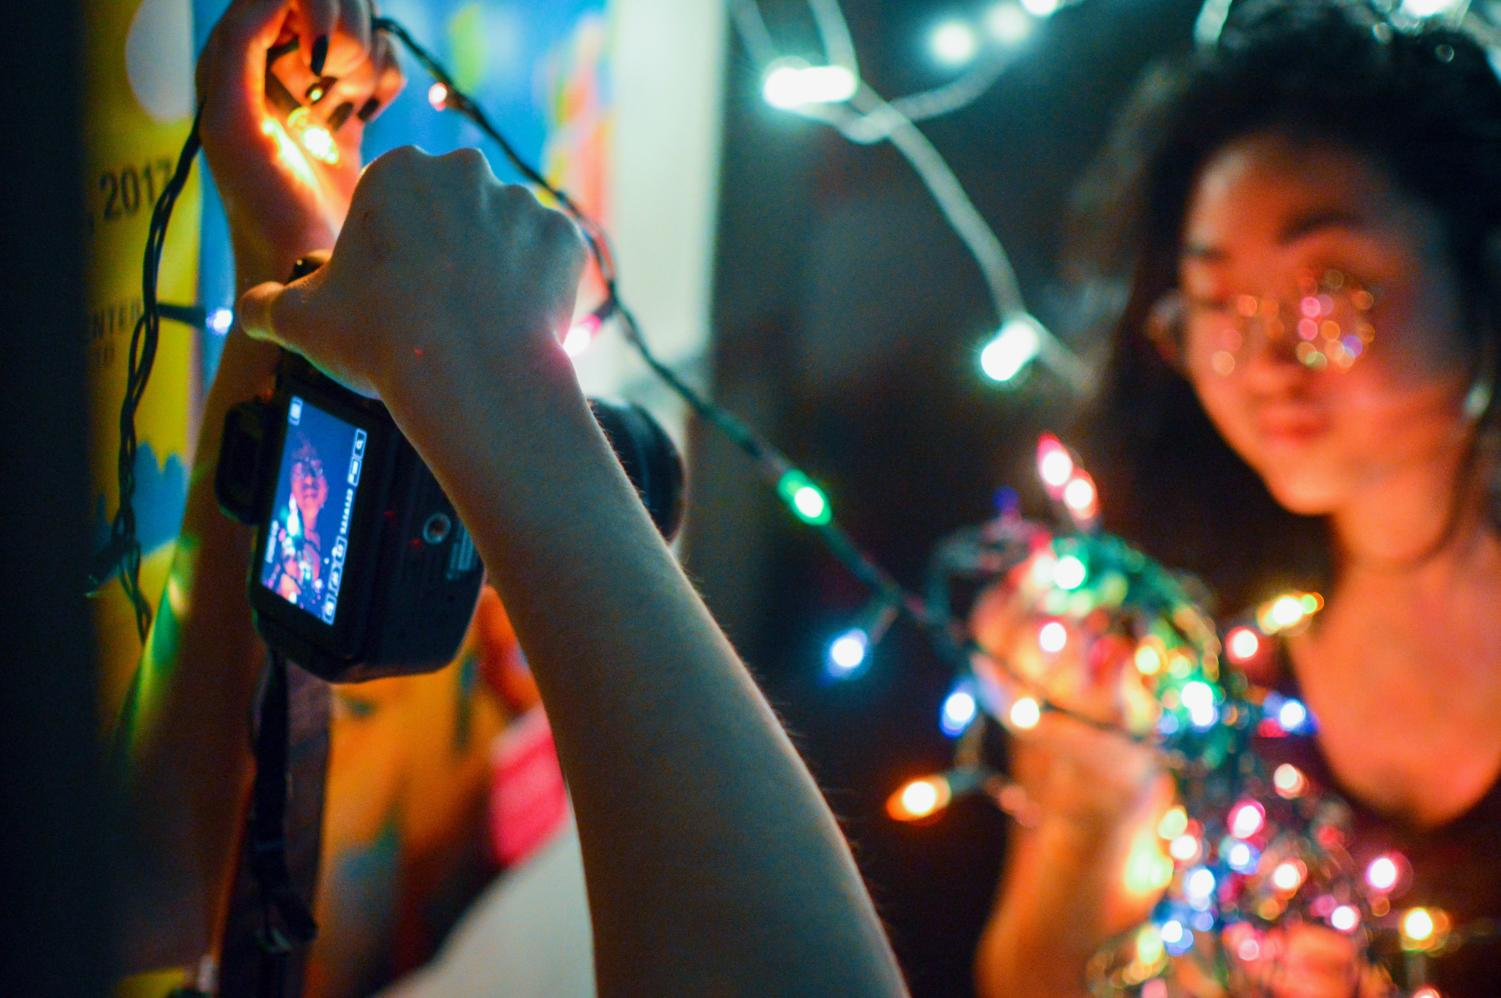 Junior Sasha Howard photographs junior Lucia Qian modeling for a string lights photoshoot.